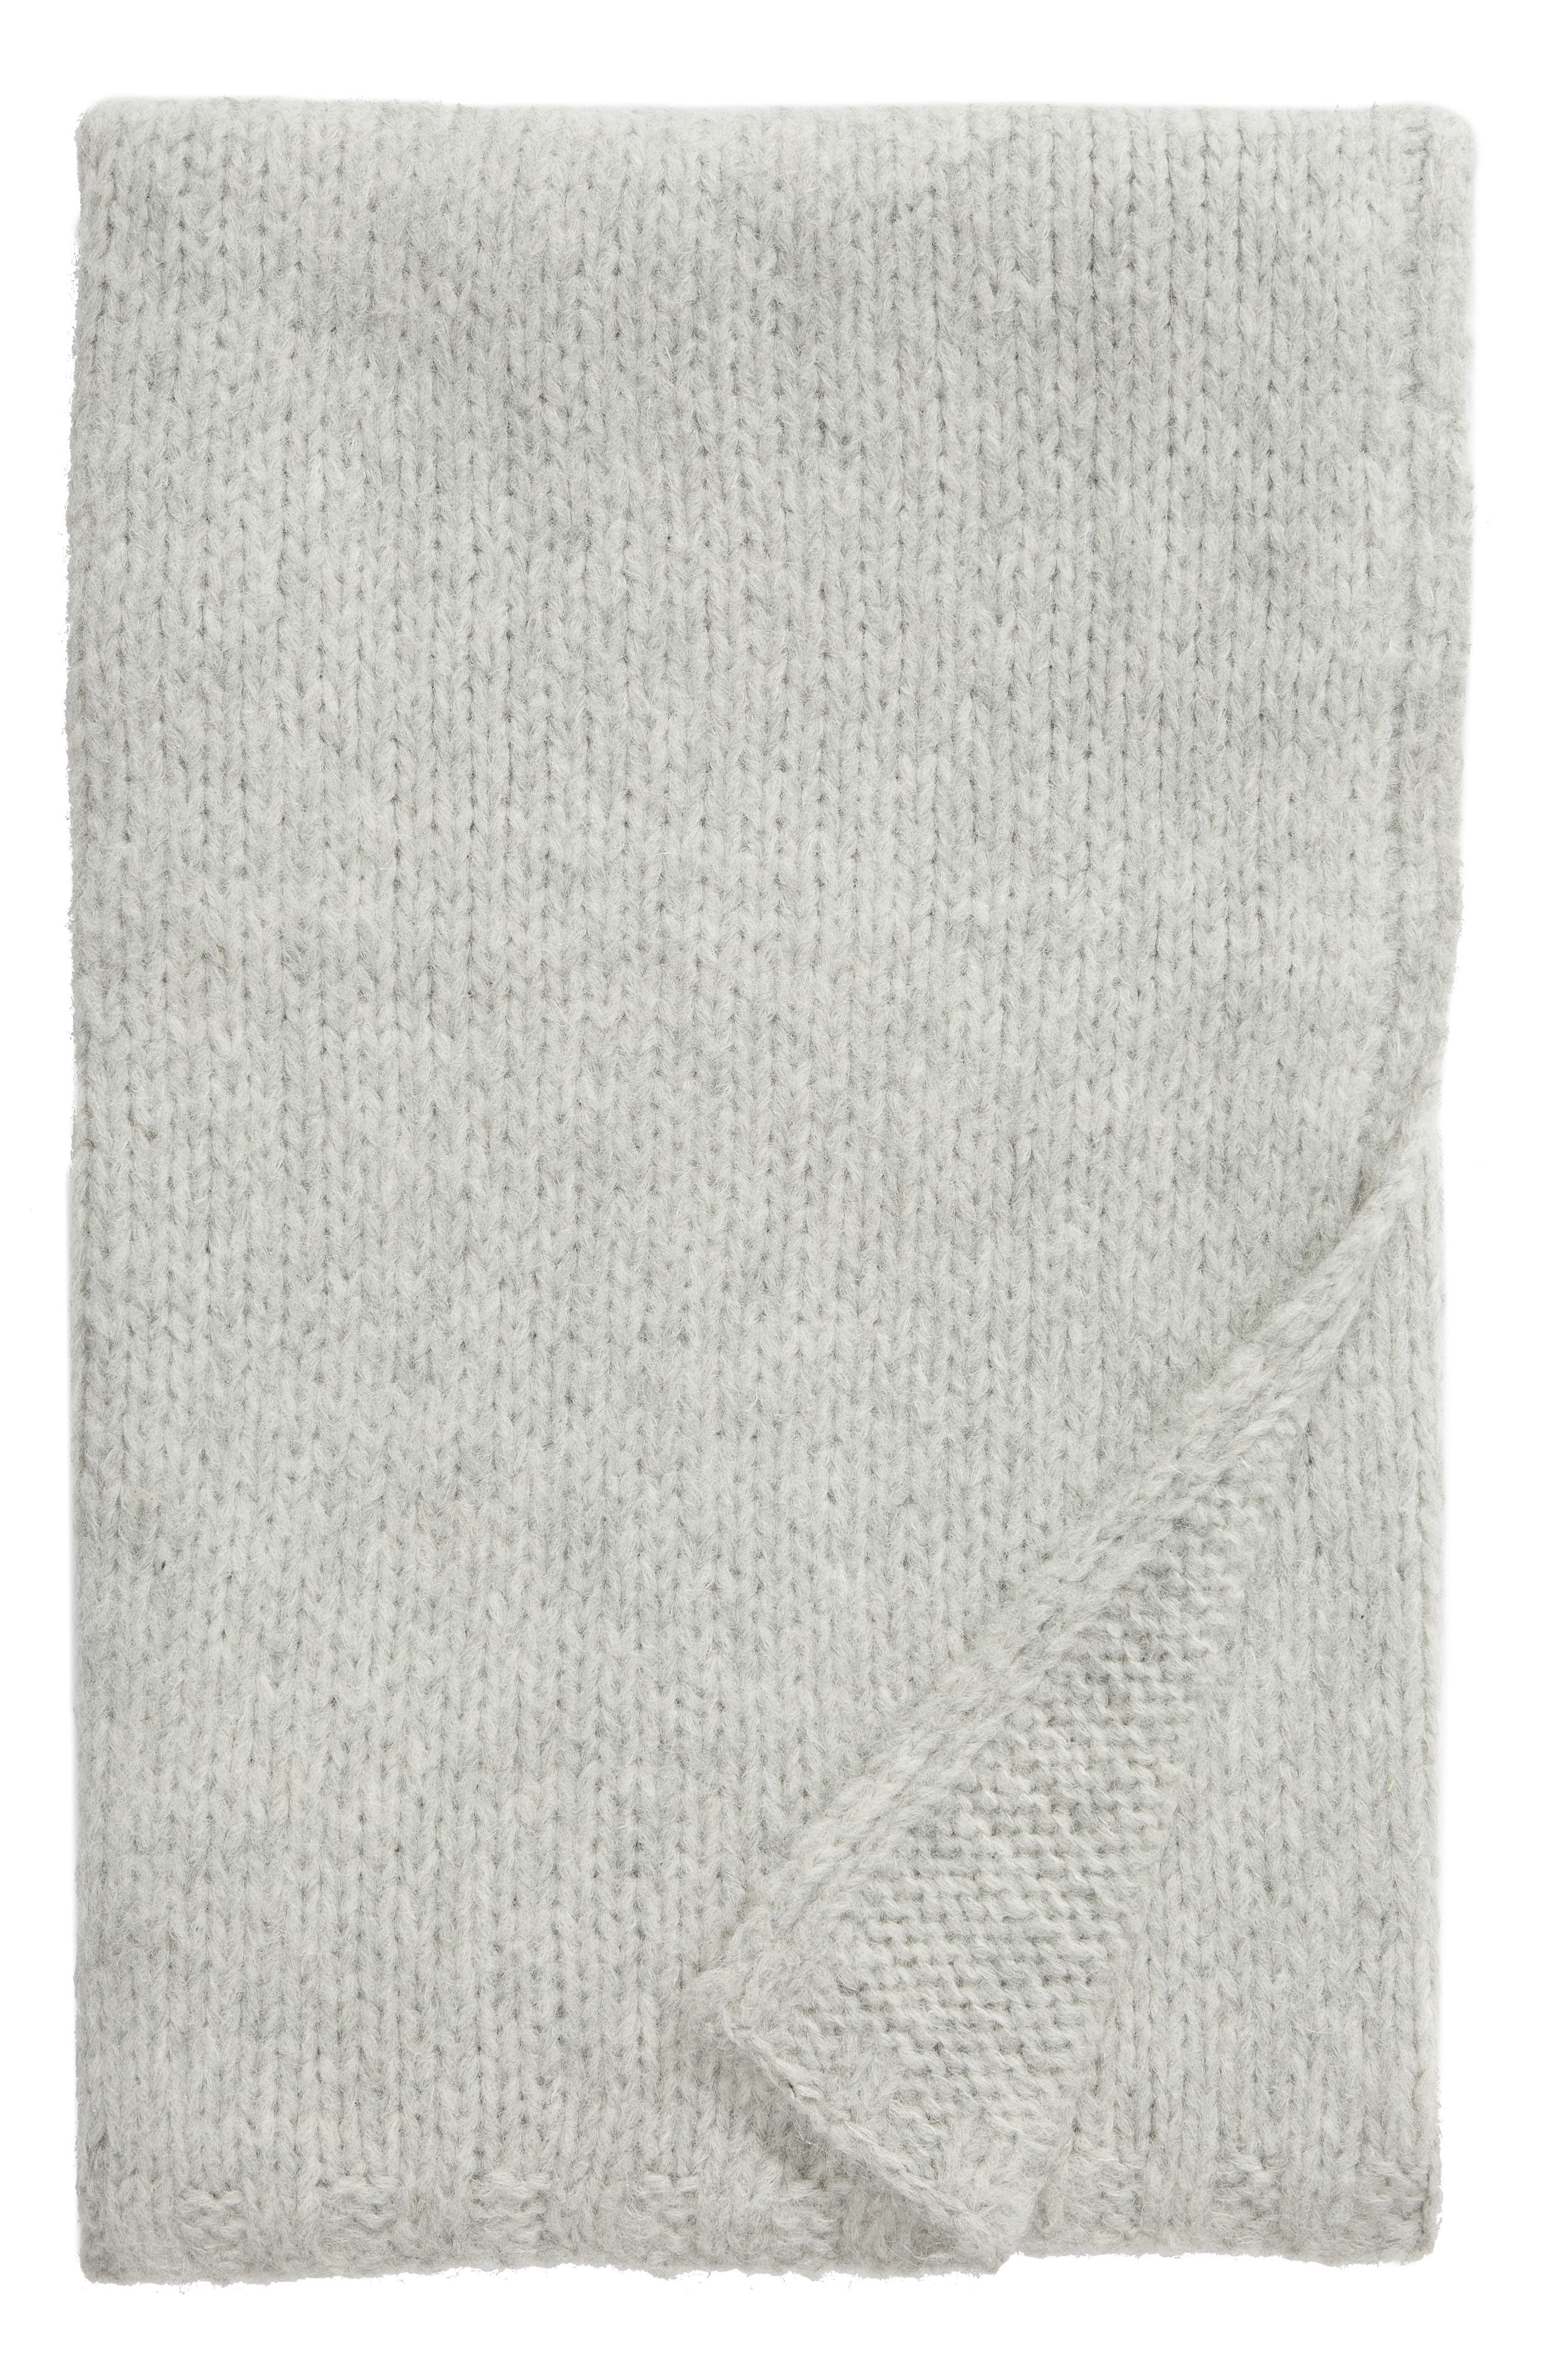 NORDSTROM SIGNATURE Chunky Knit Alpaca Blend Throw Blanket, Main, color, GREY HEATHER